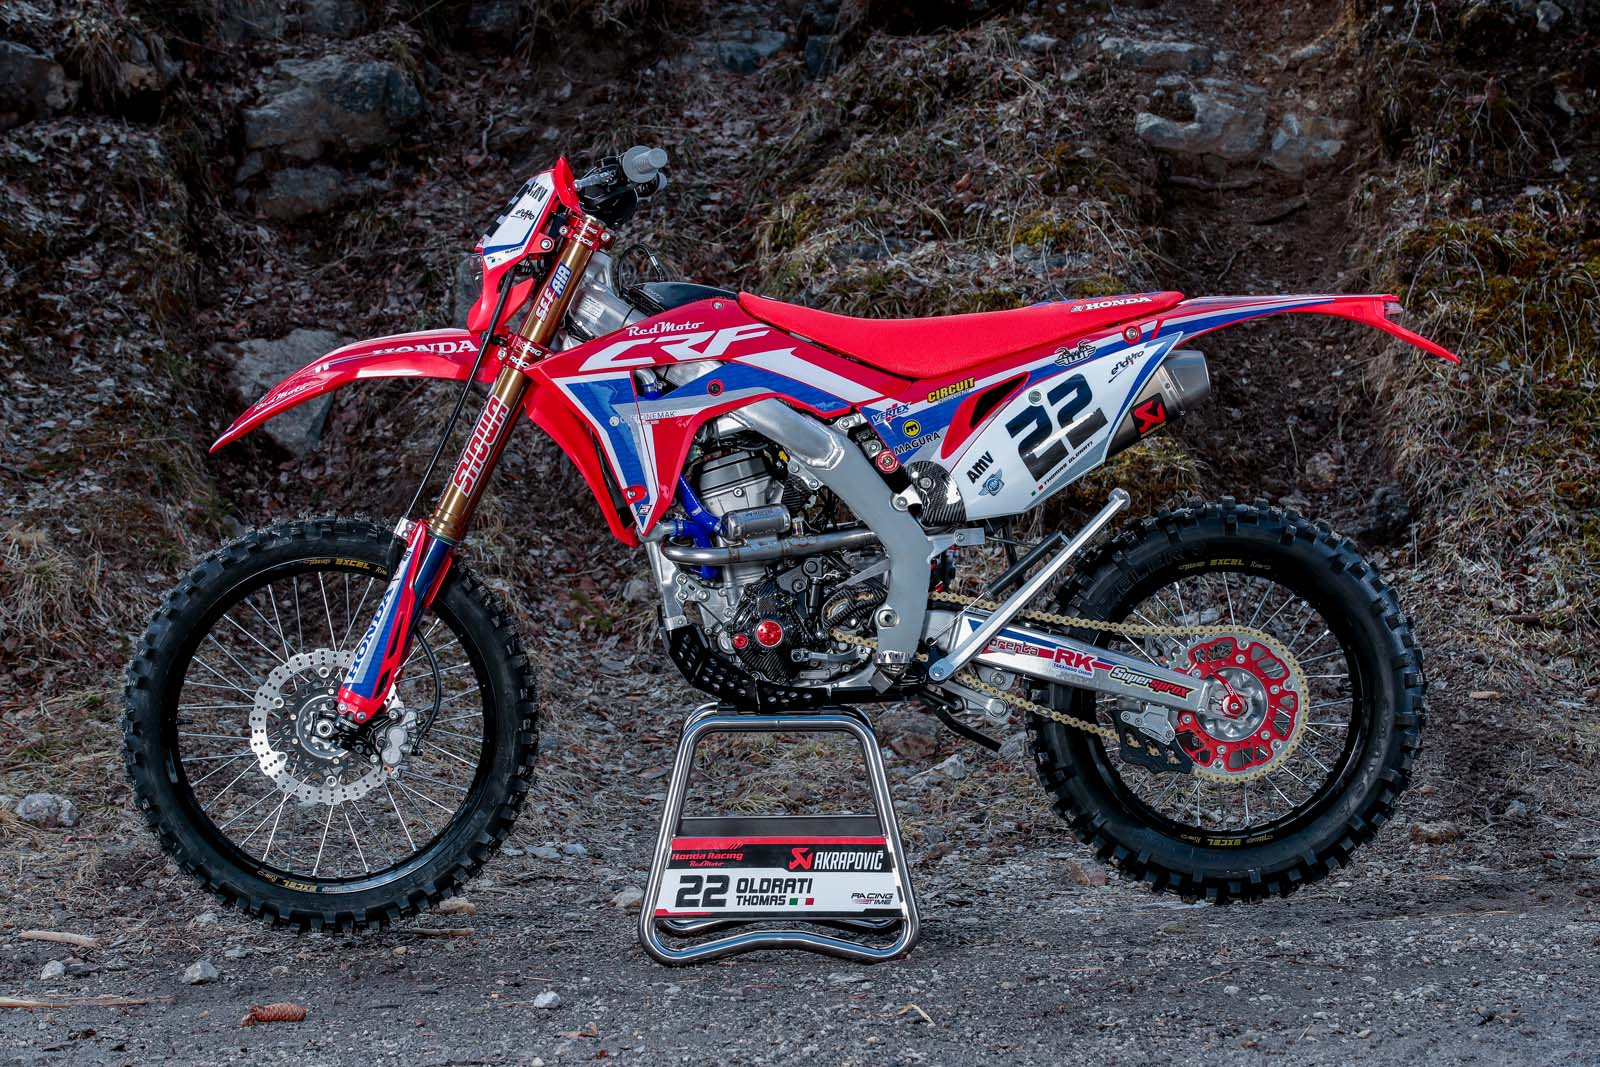 My Ride: Thomas Oldrati's 2020 RedMoto Honda CRF250RX